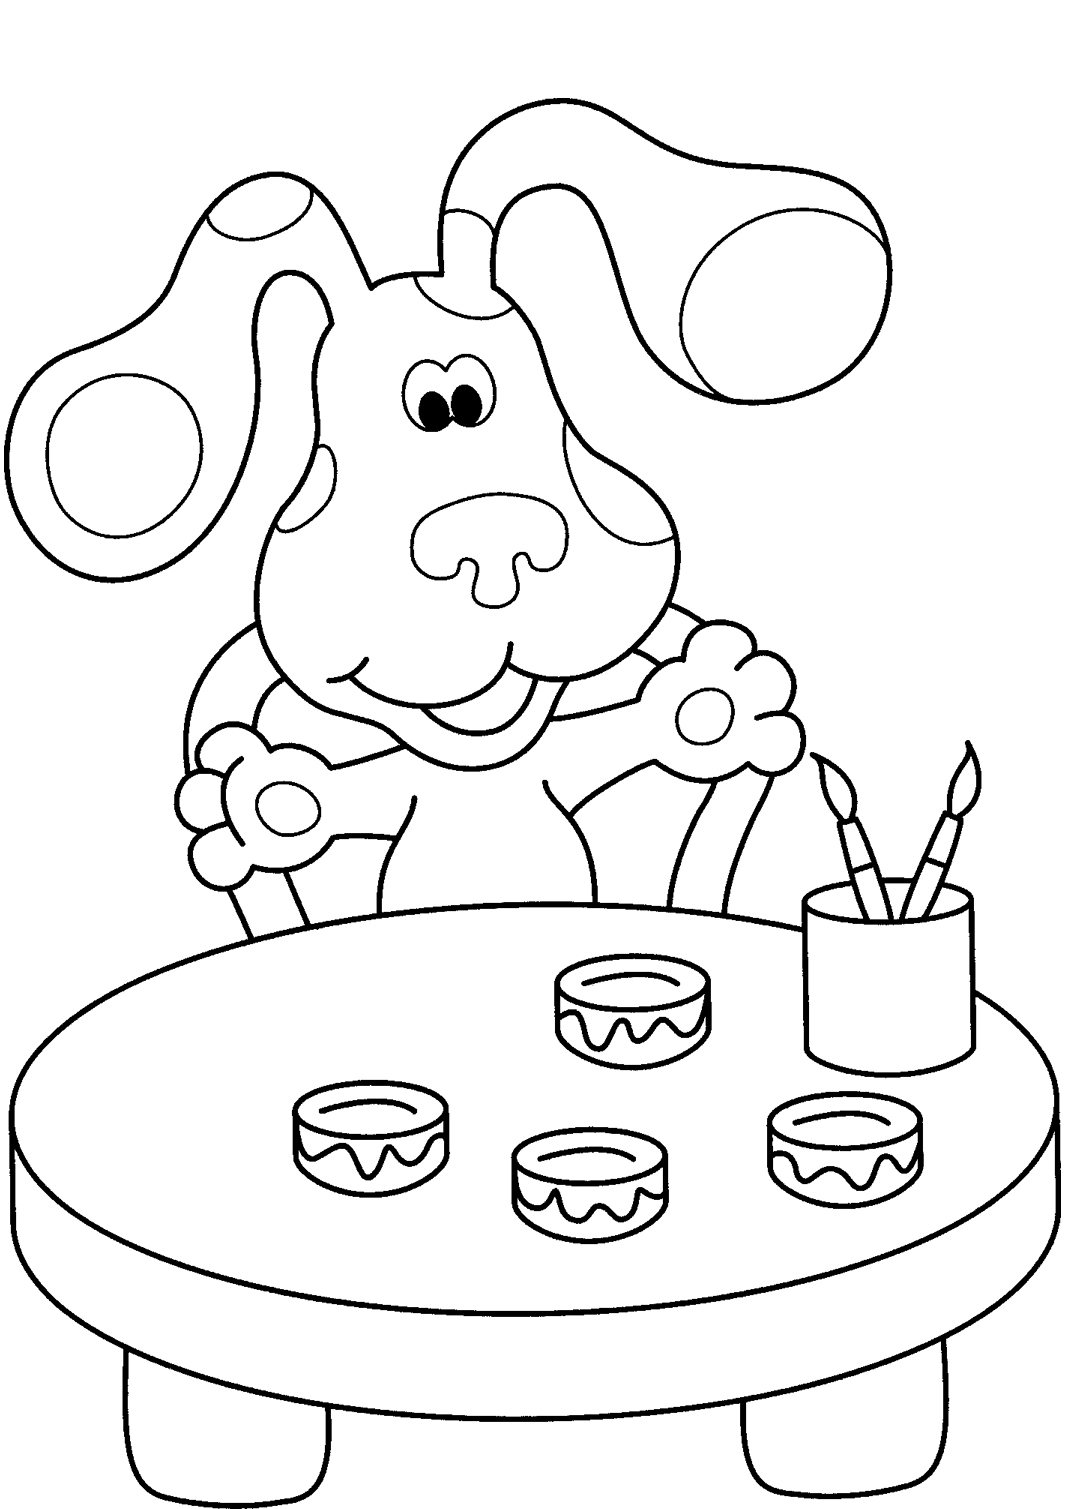 Printable Blues Clues Coloring Pages Coloring Me